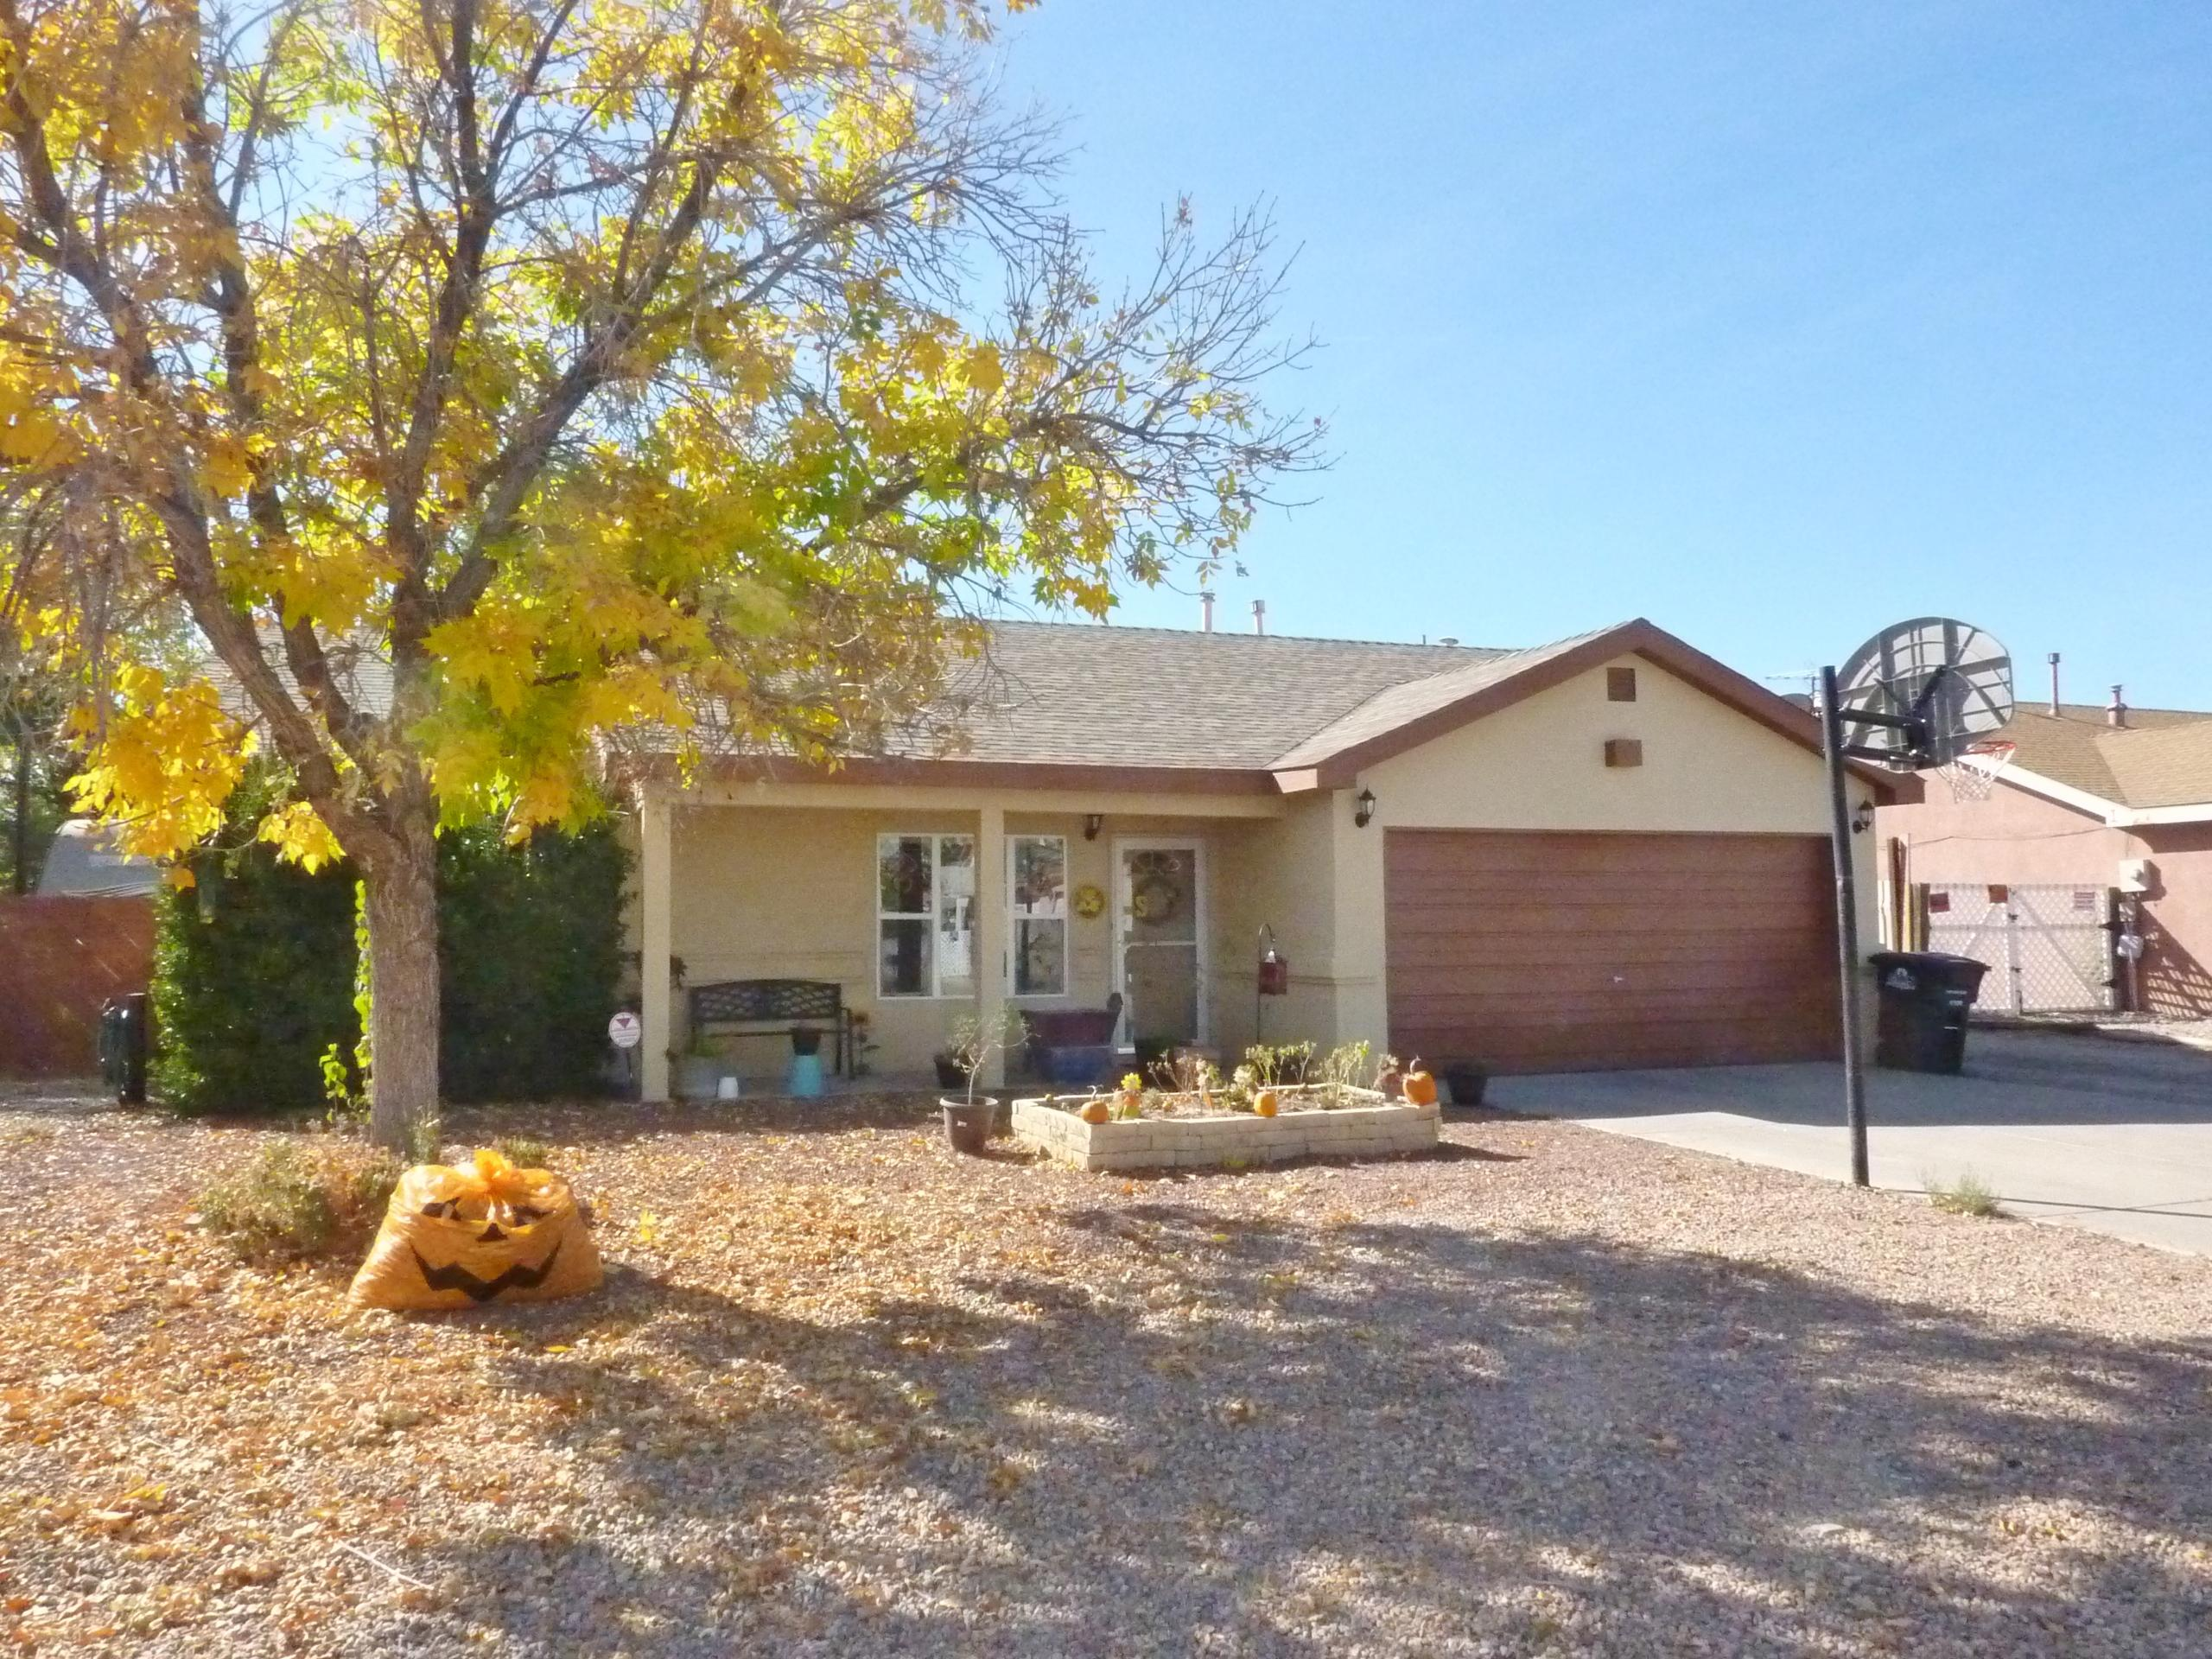 14 TIMOTHY Drive Property Photo - Los Lunas, NM real estate listing